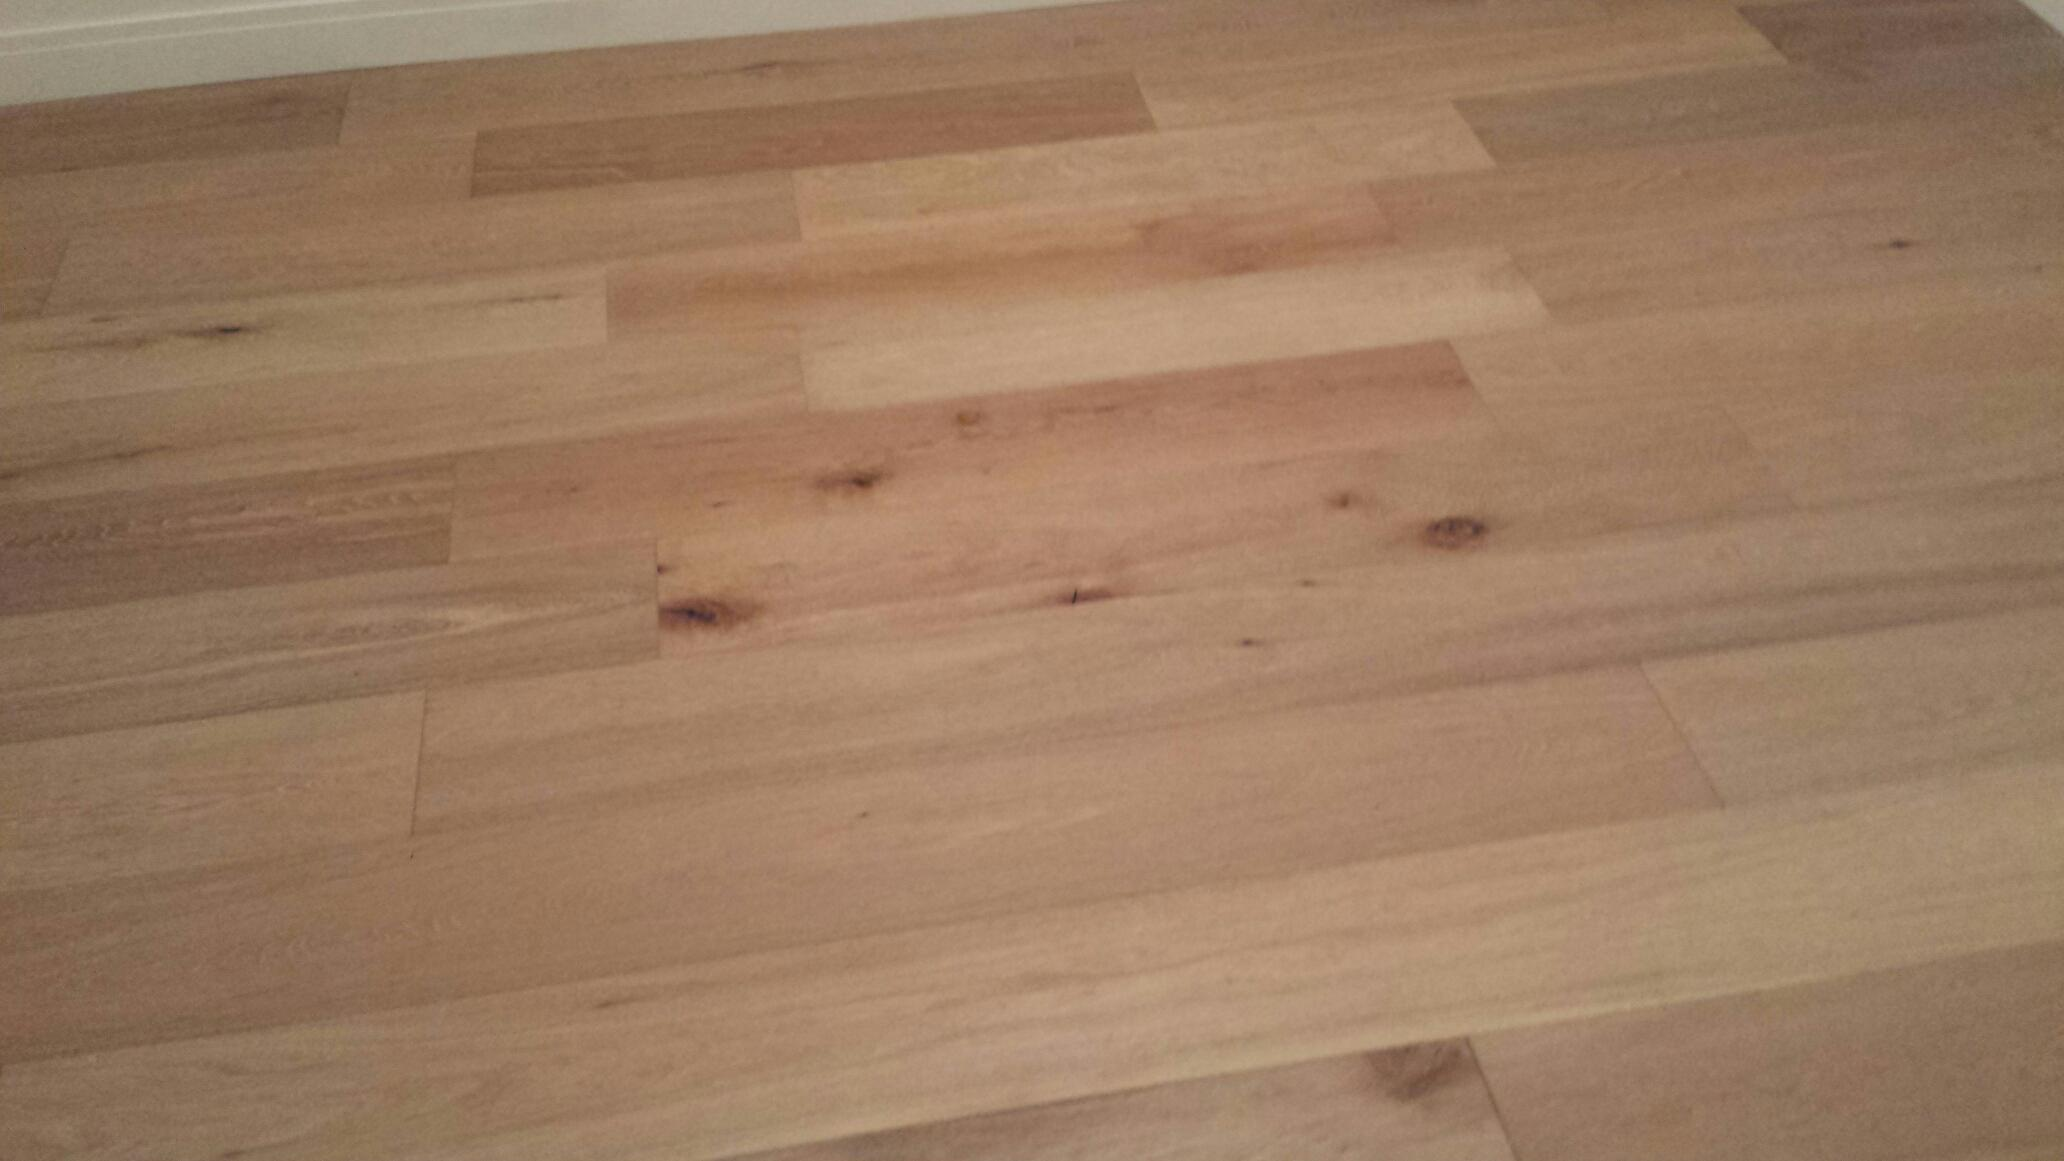 Oak flooring sanded and finished in natural stain color with 4 coats of semi gloss polyurethane.